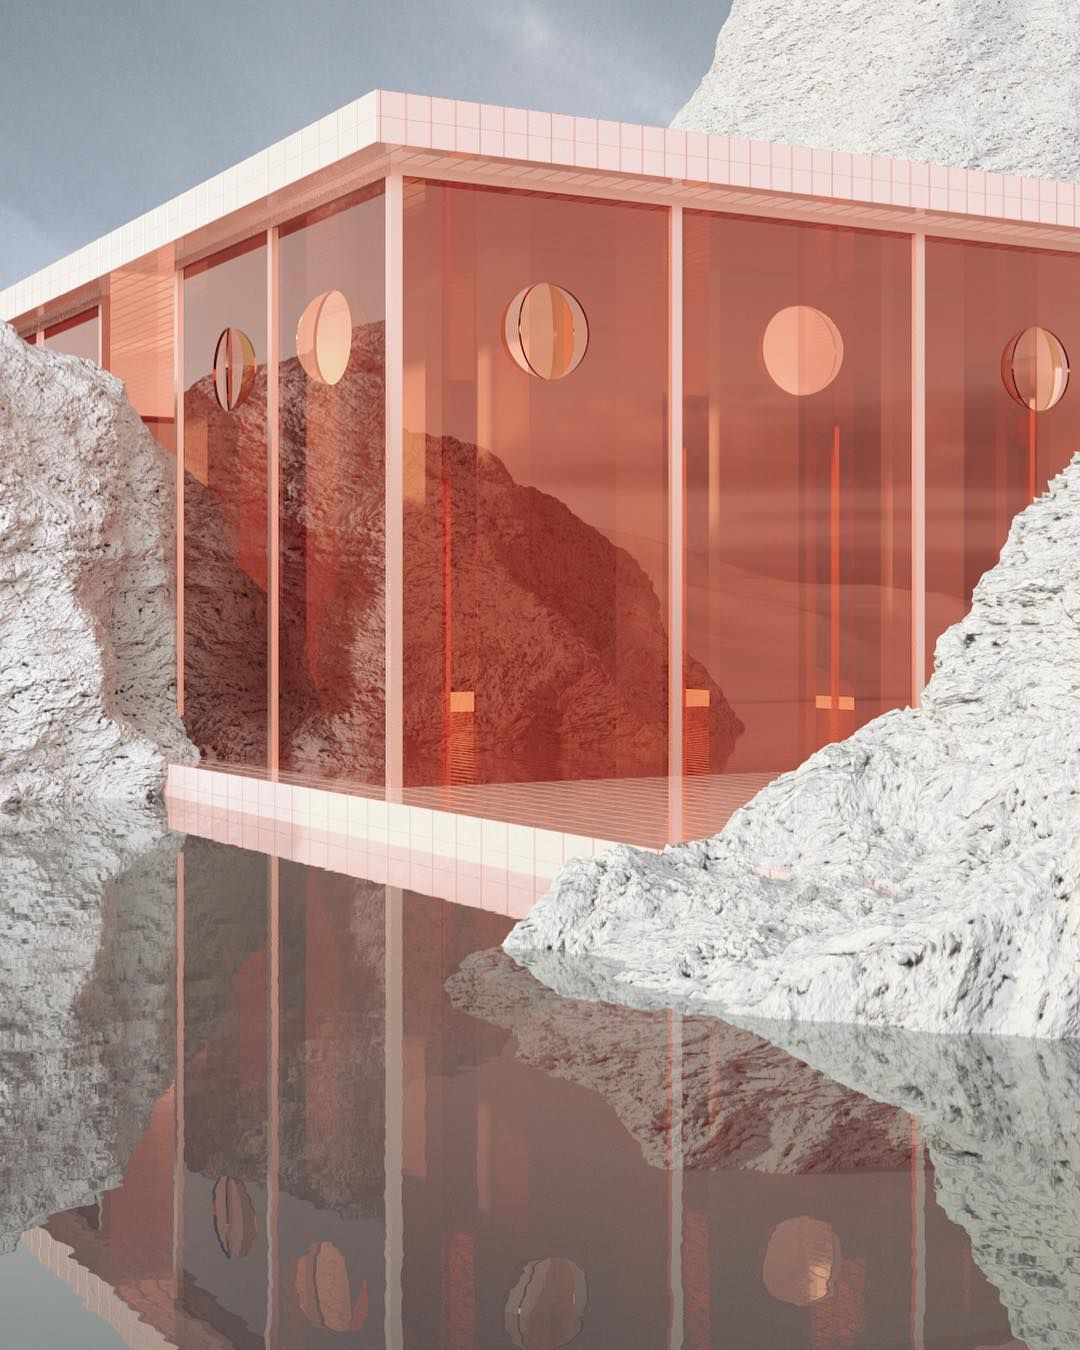 3D-visuals-trends-for-2021-2022-interior-and-exterior-spaces4